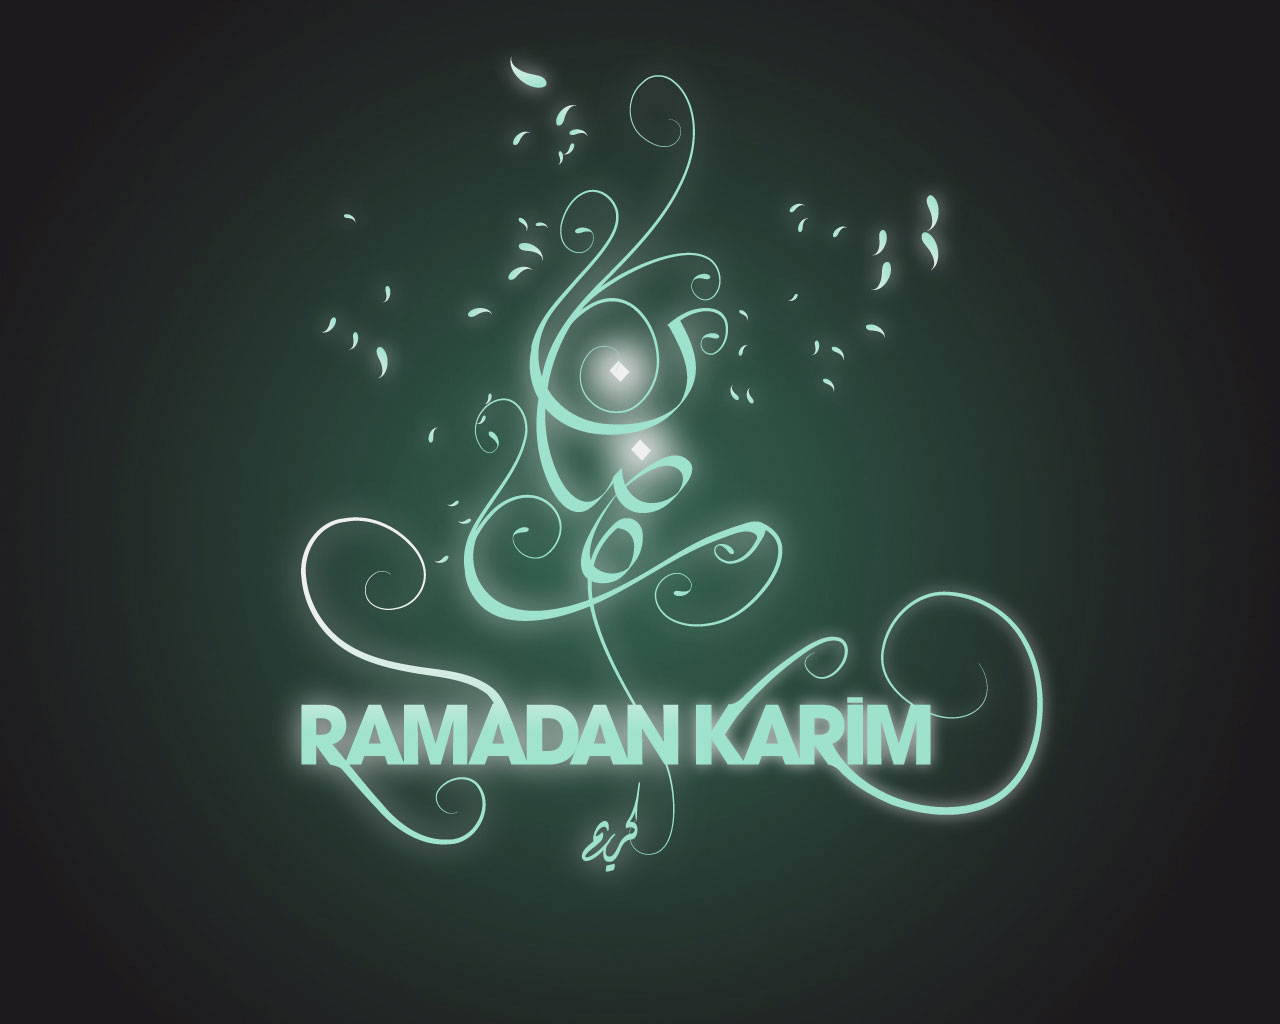 Ramadan mubarak wallpaper card in english travel around the world ramadan mubarak wallpaper card in english m4hsunfo